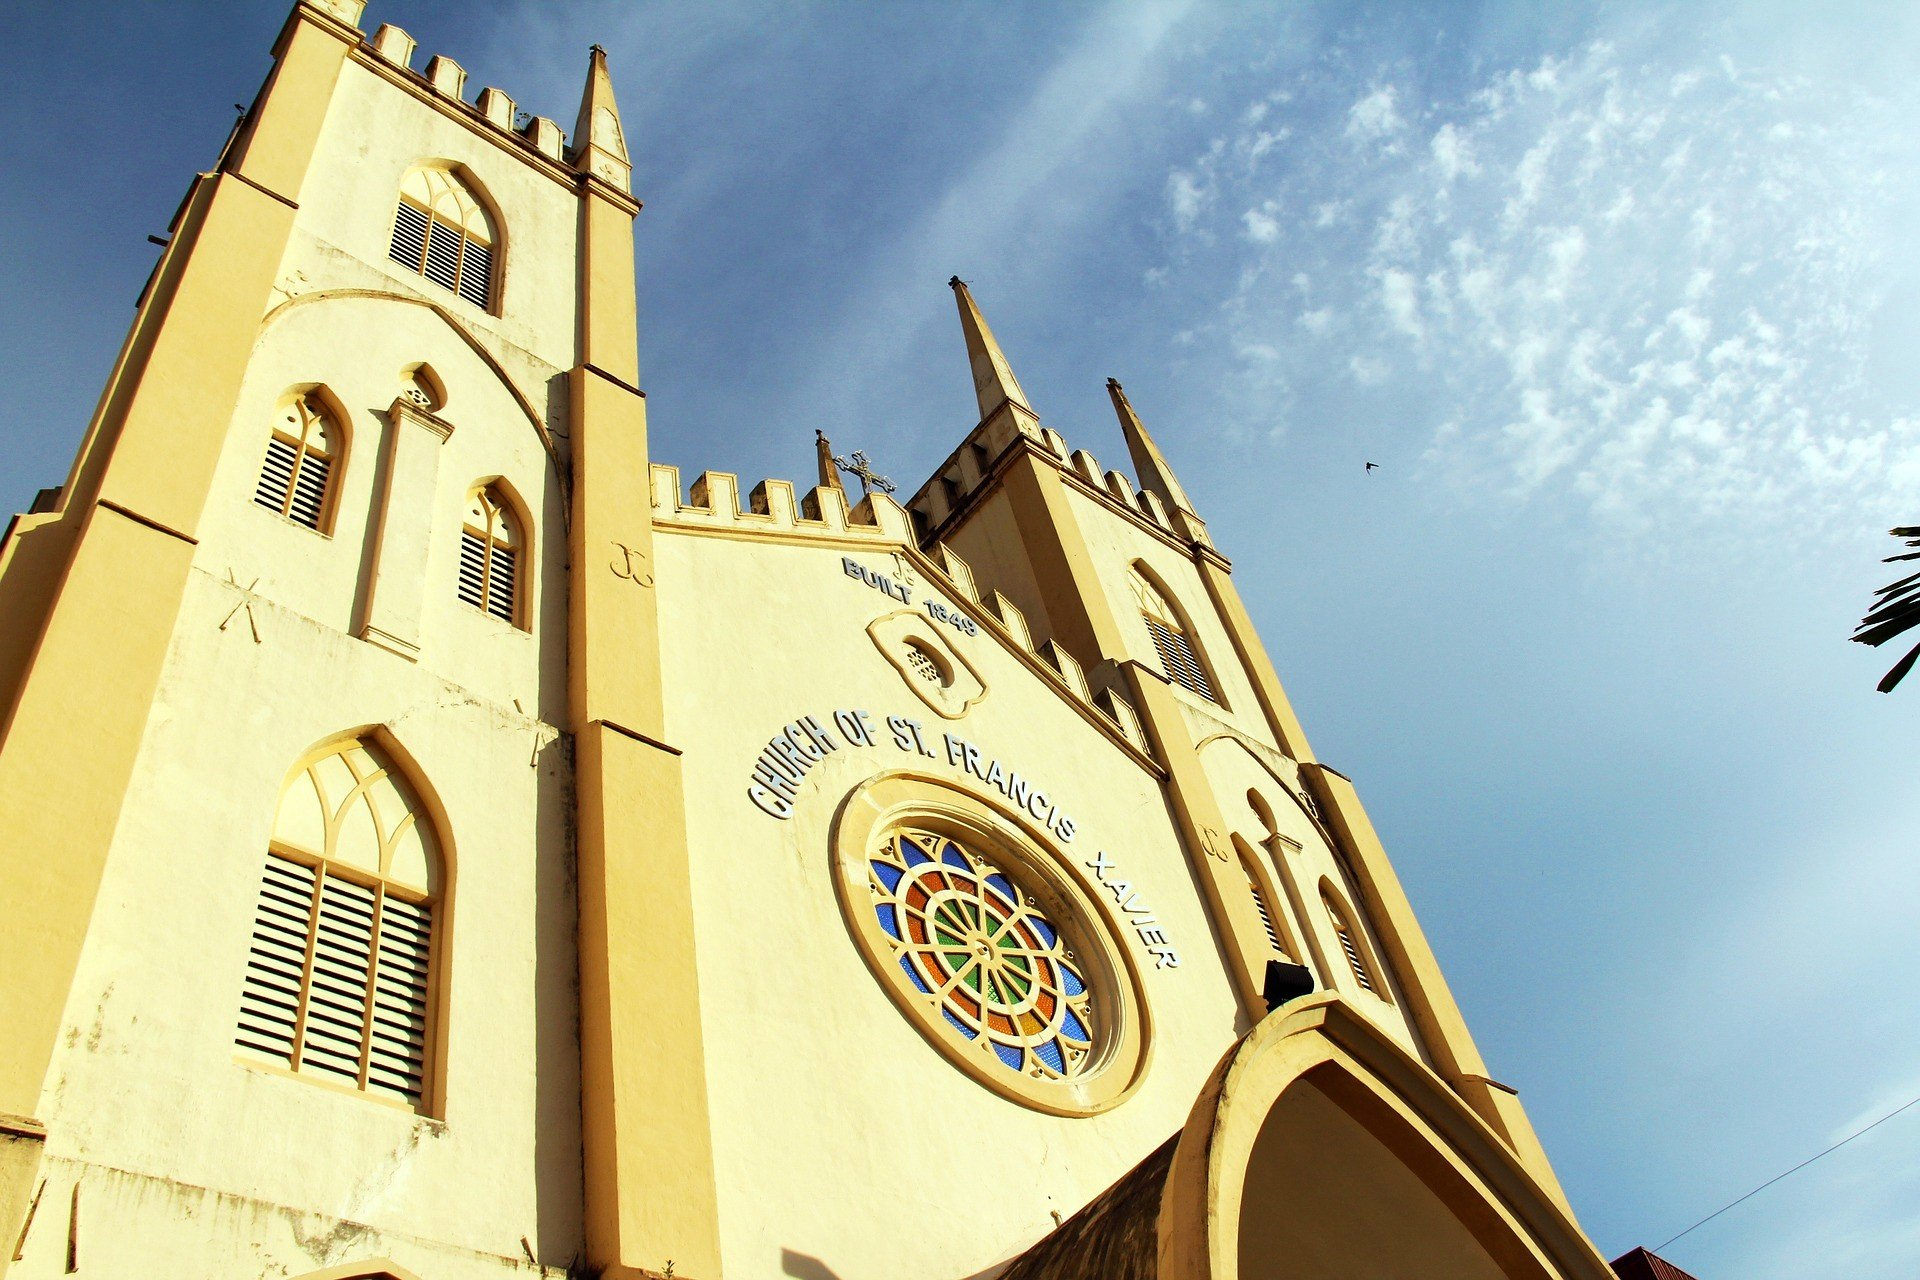 Church of St. Francis Xavier in Melaka